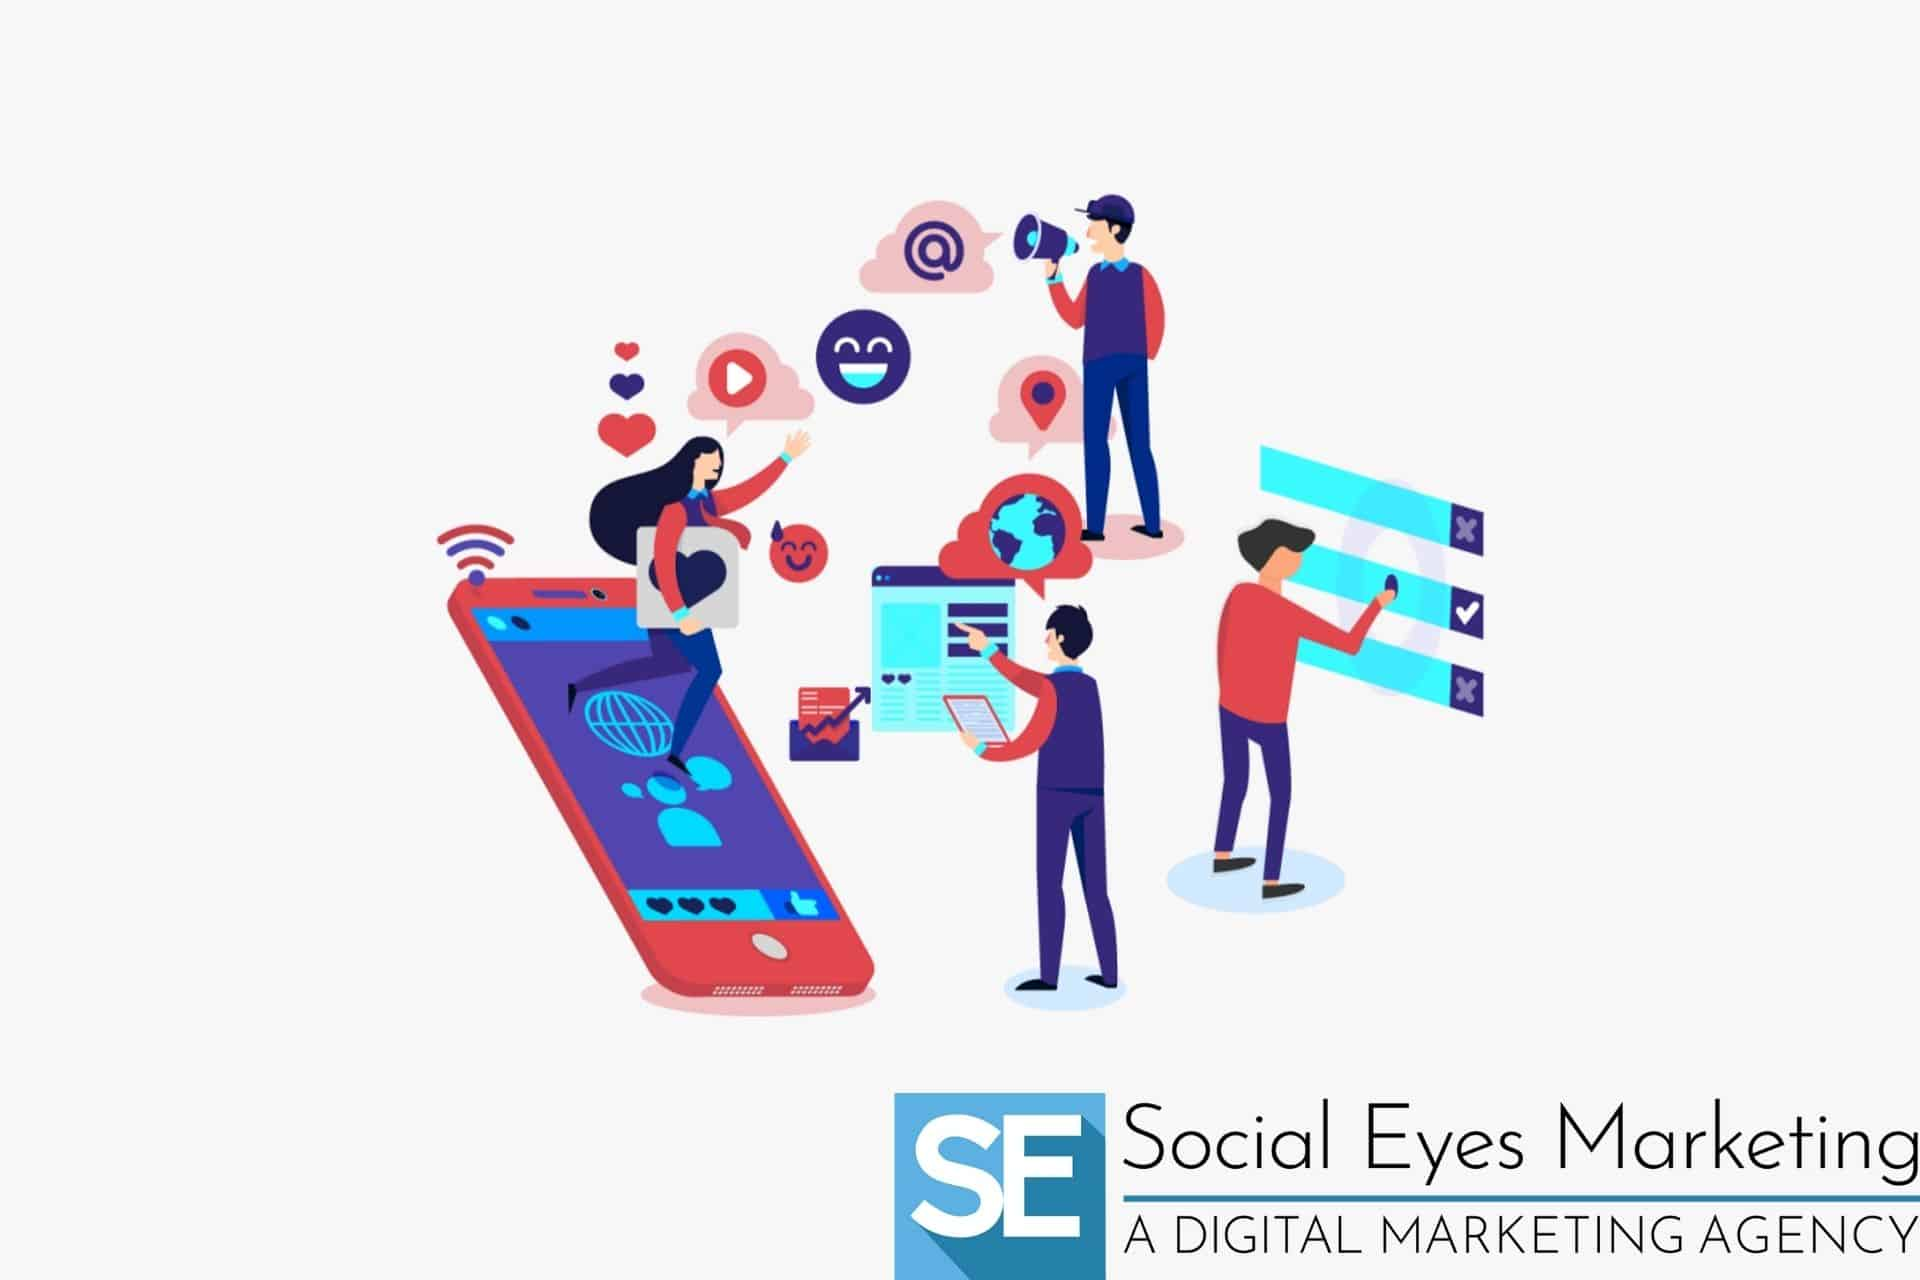 4 Components to Effective Social Media Marketing